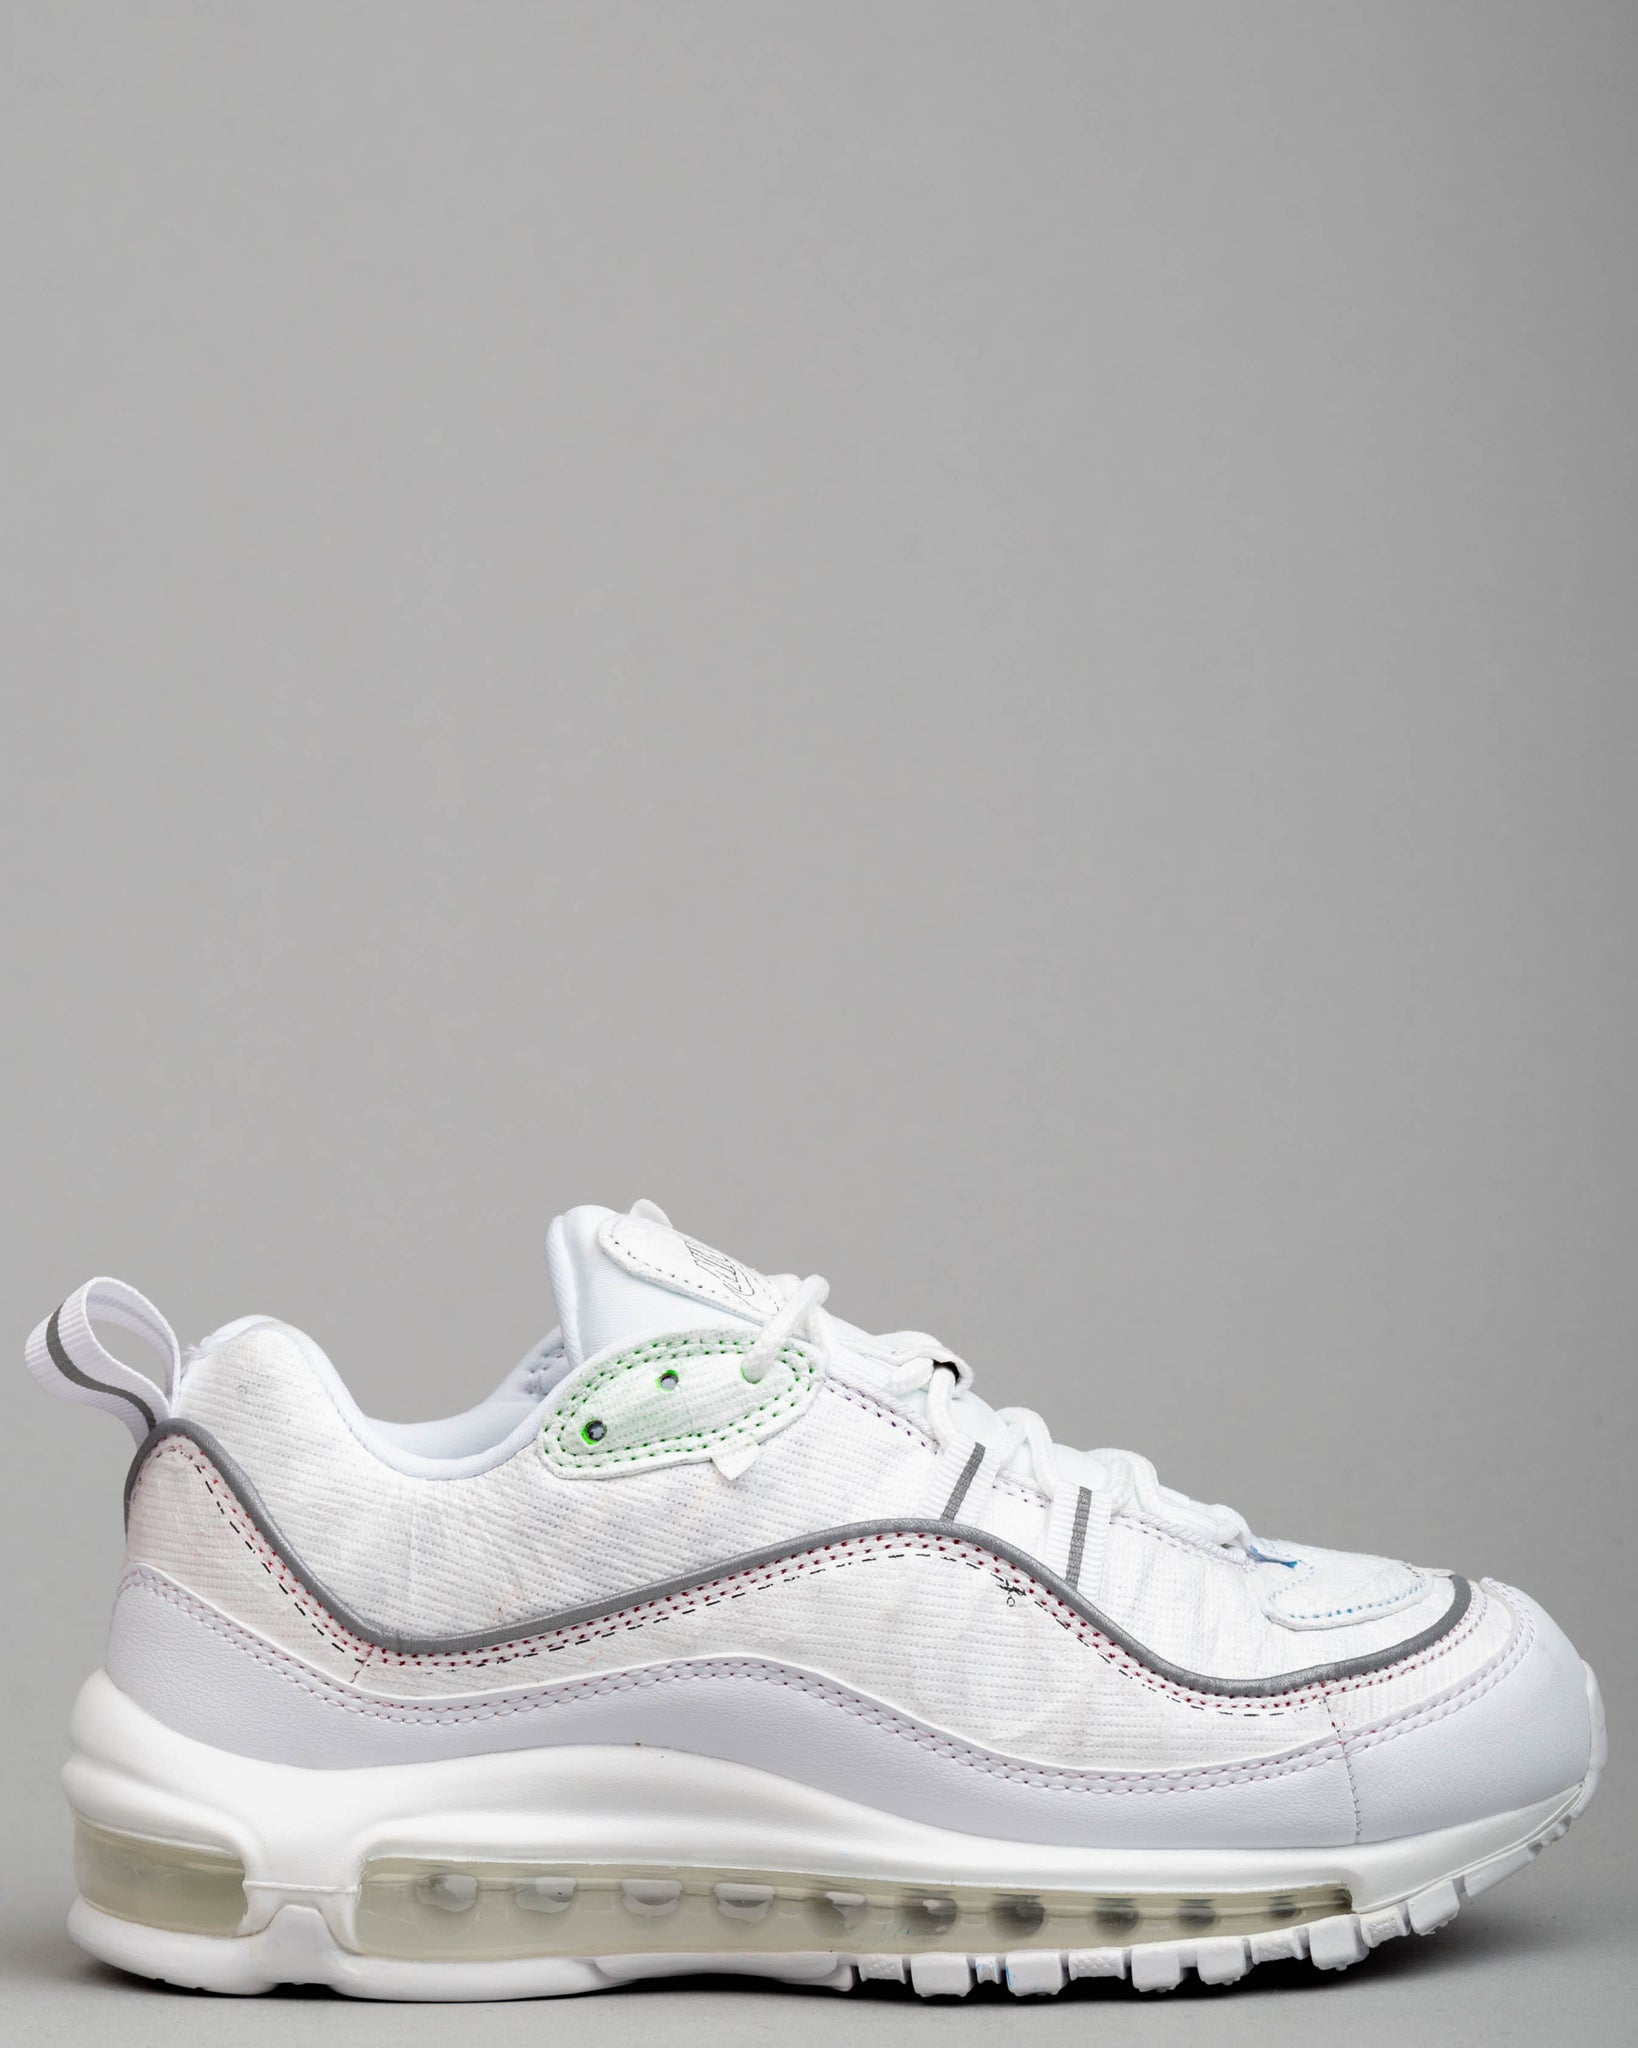 W Air Max 98 LX White/Multi Color